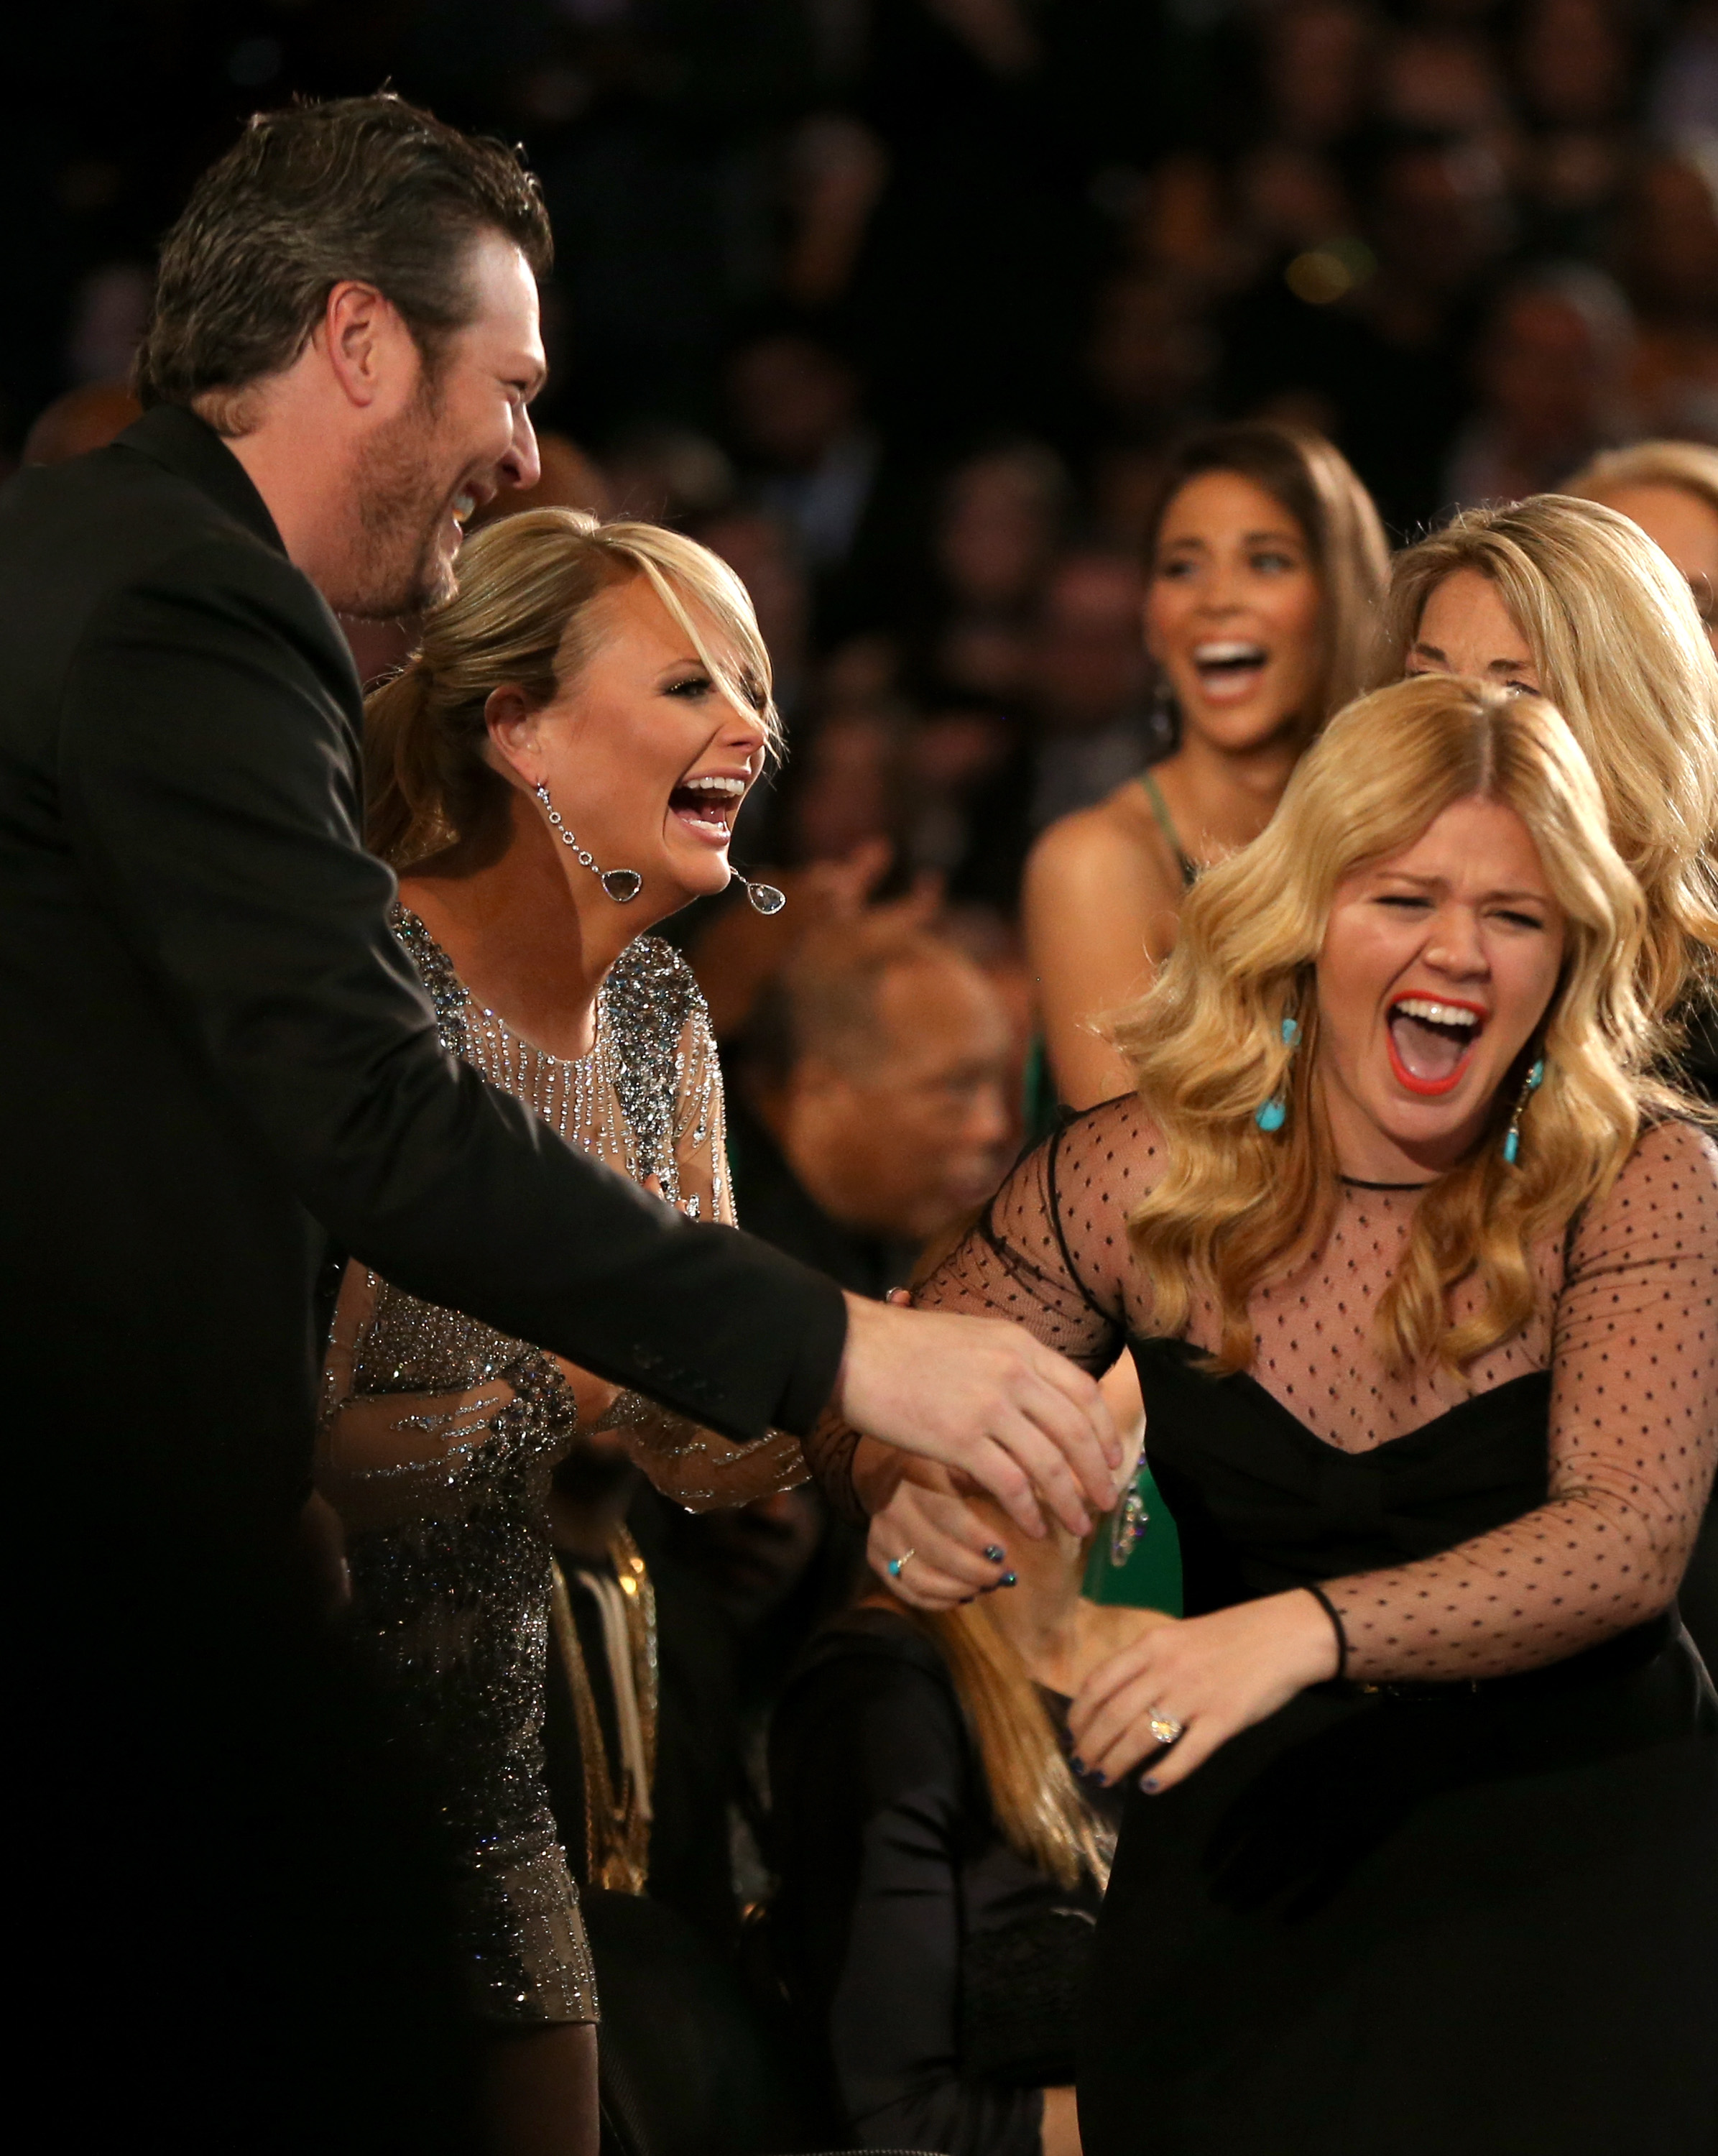 Miranda Lambert and Blake Shelton showed their excitement after Kelly Clarkson's big win Sunday night.